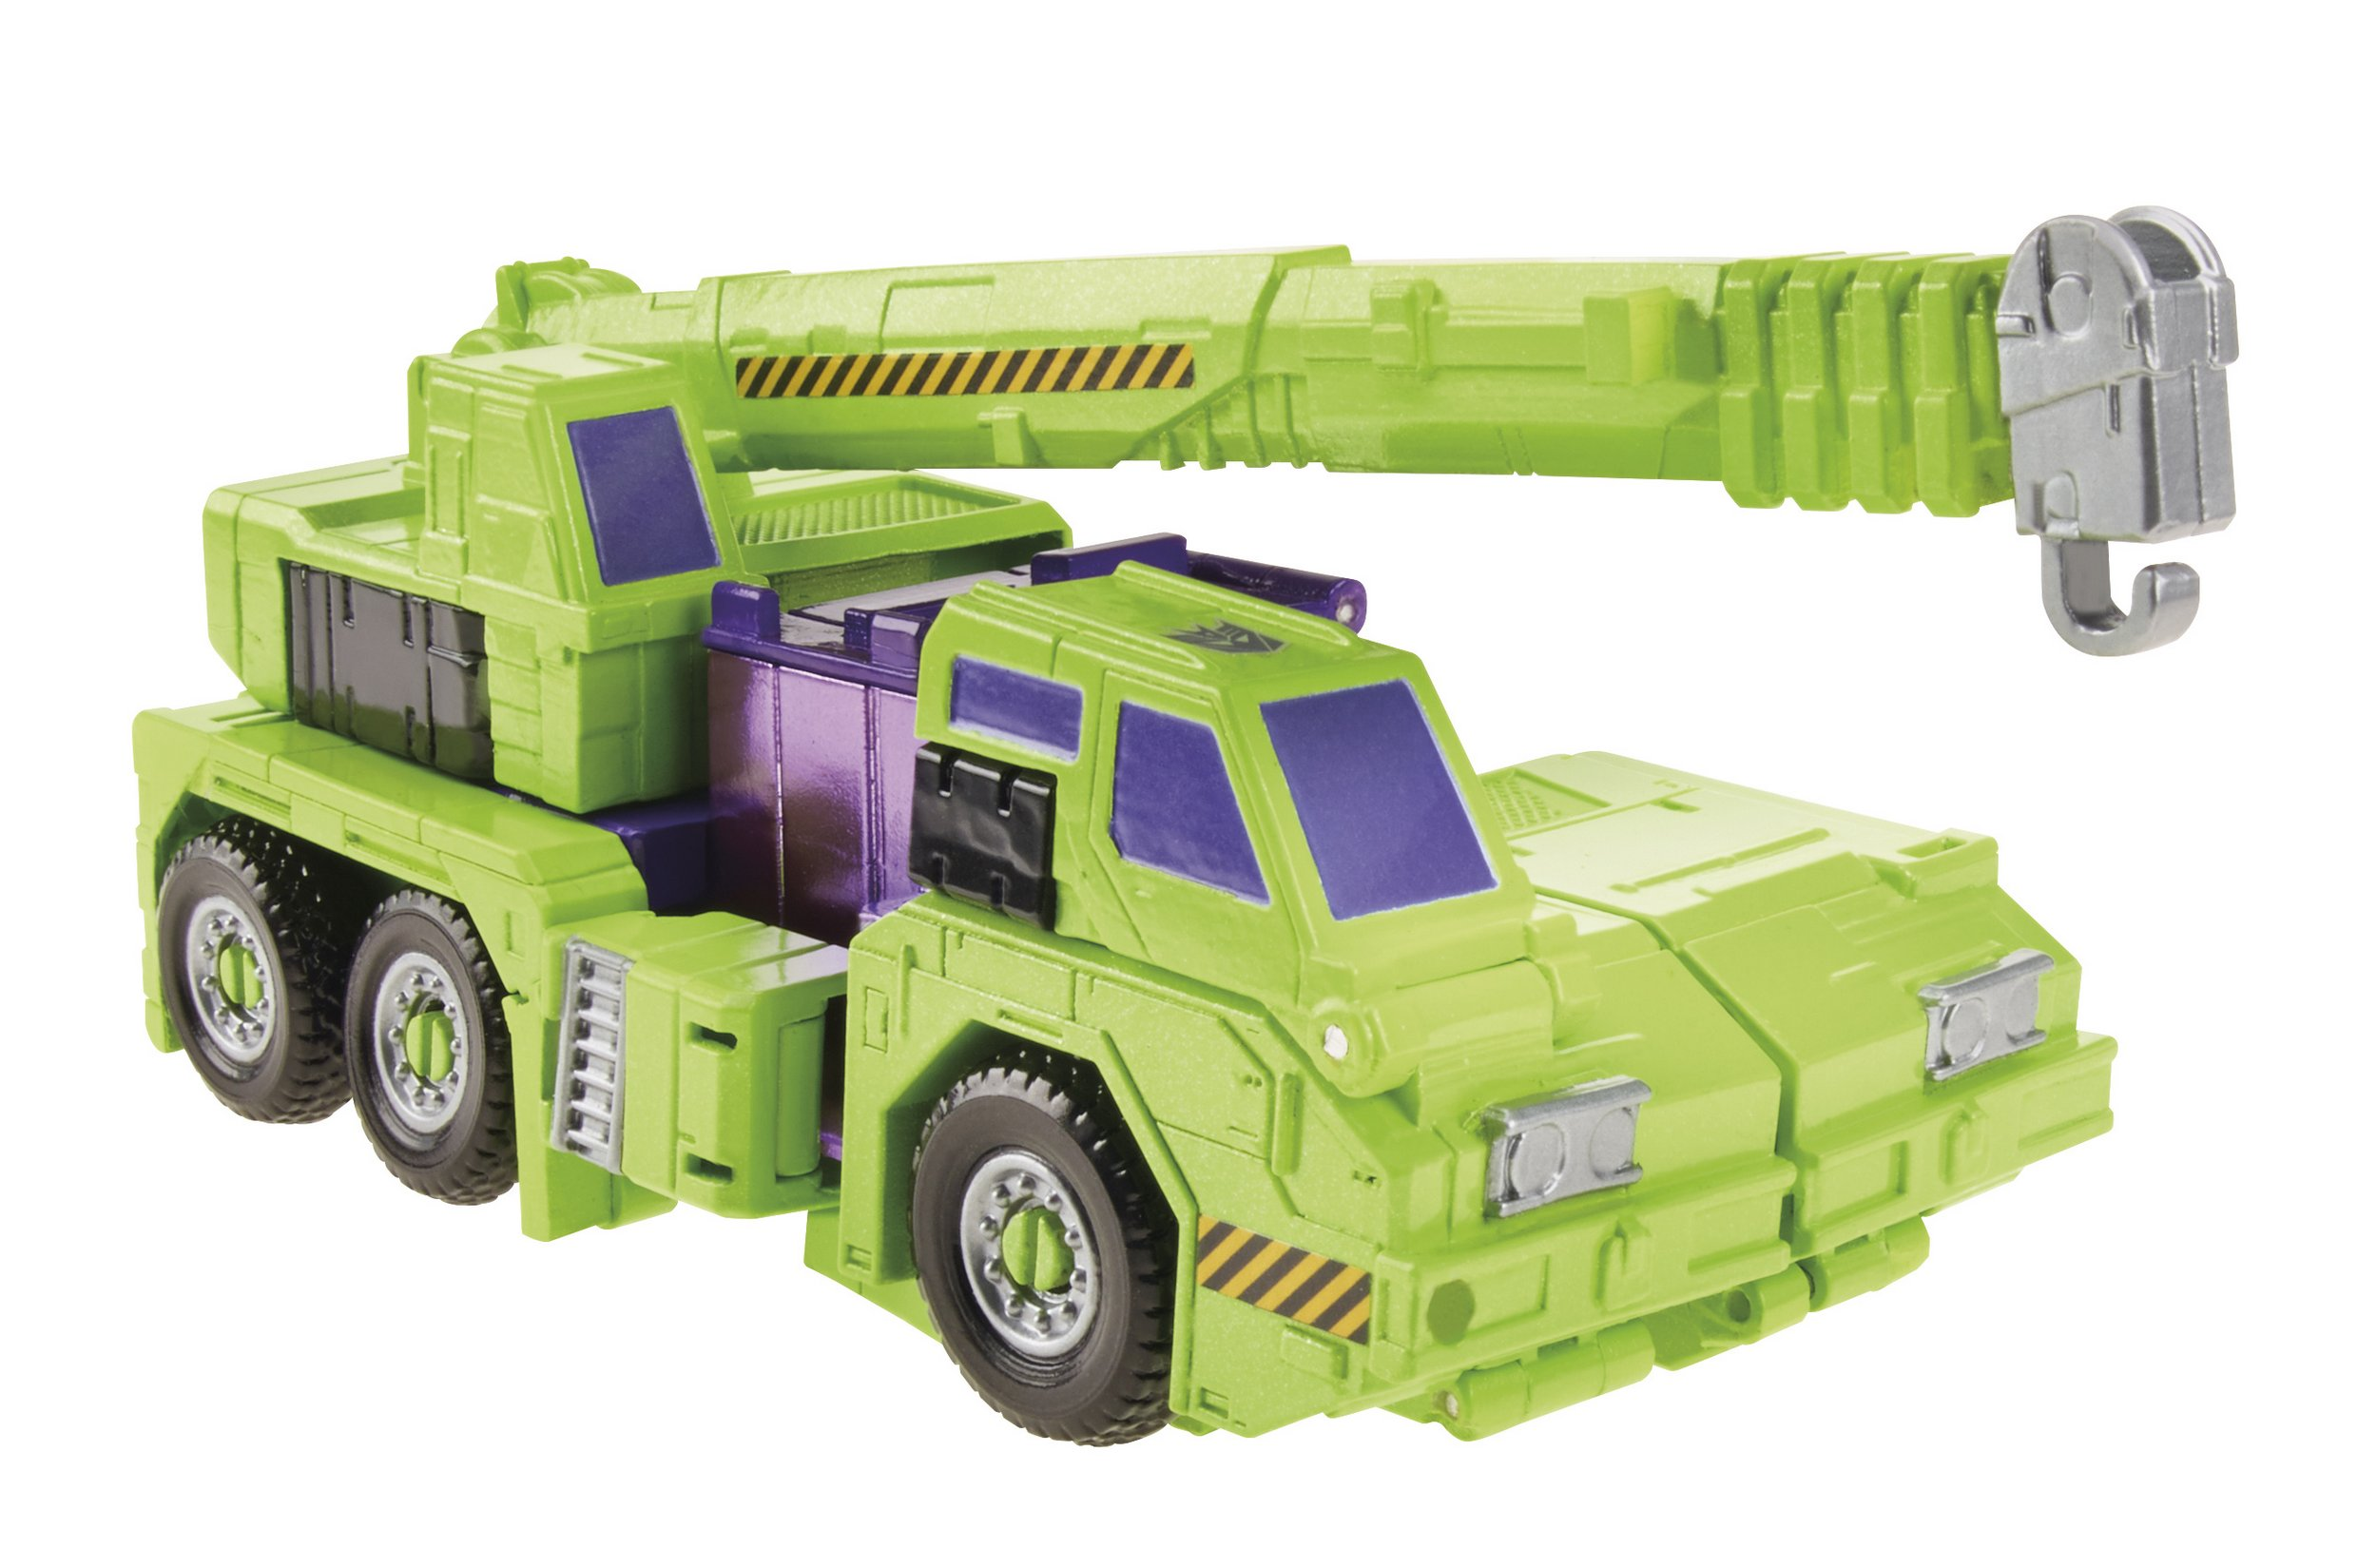 Constructicon-Hook-Vehicle_1434047846.jpg